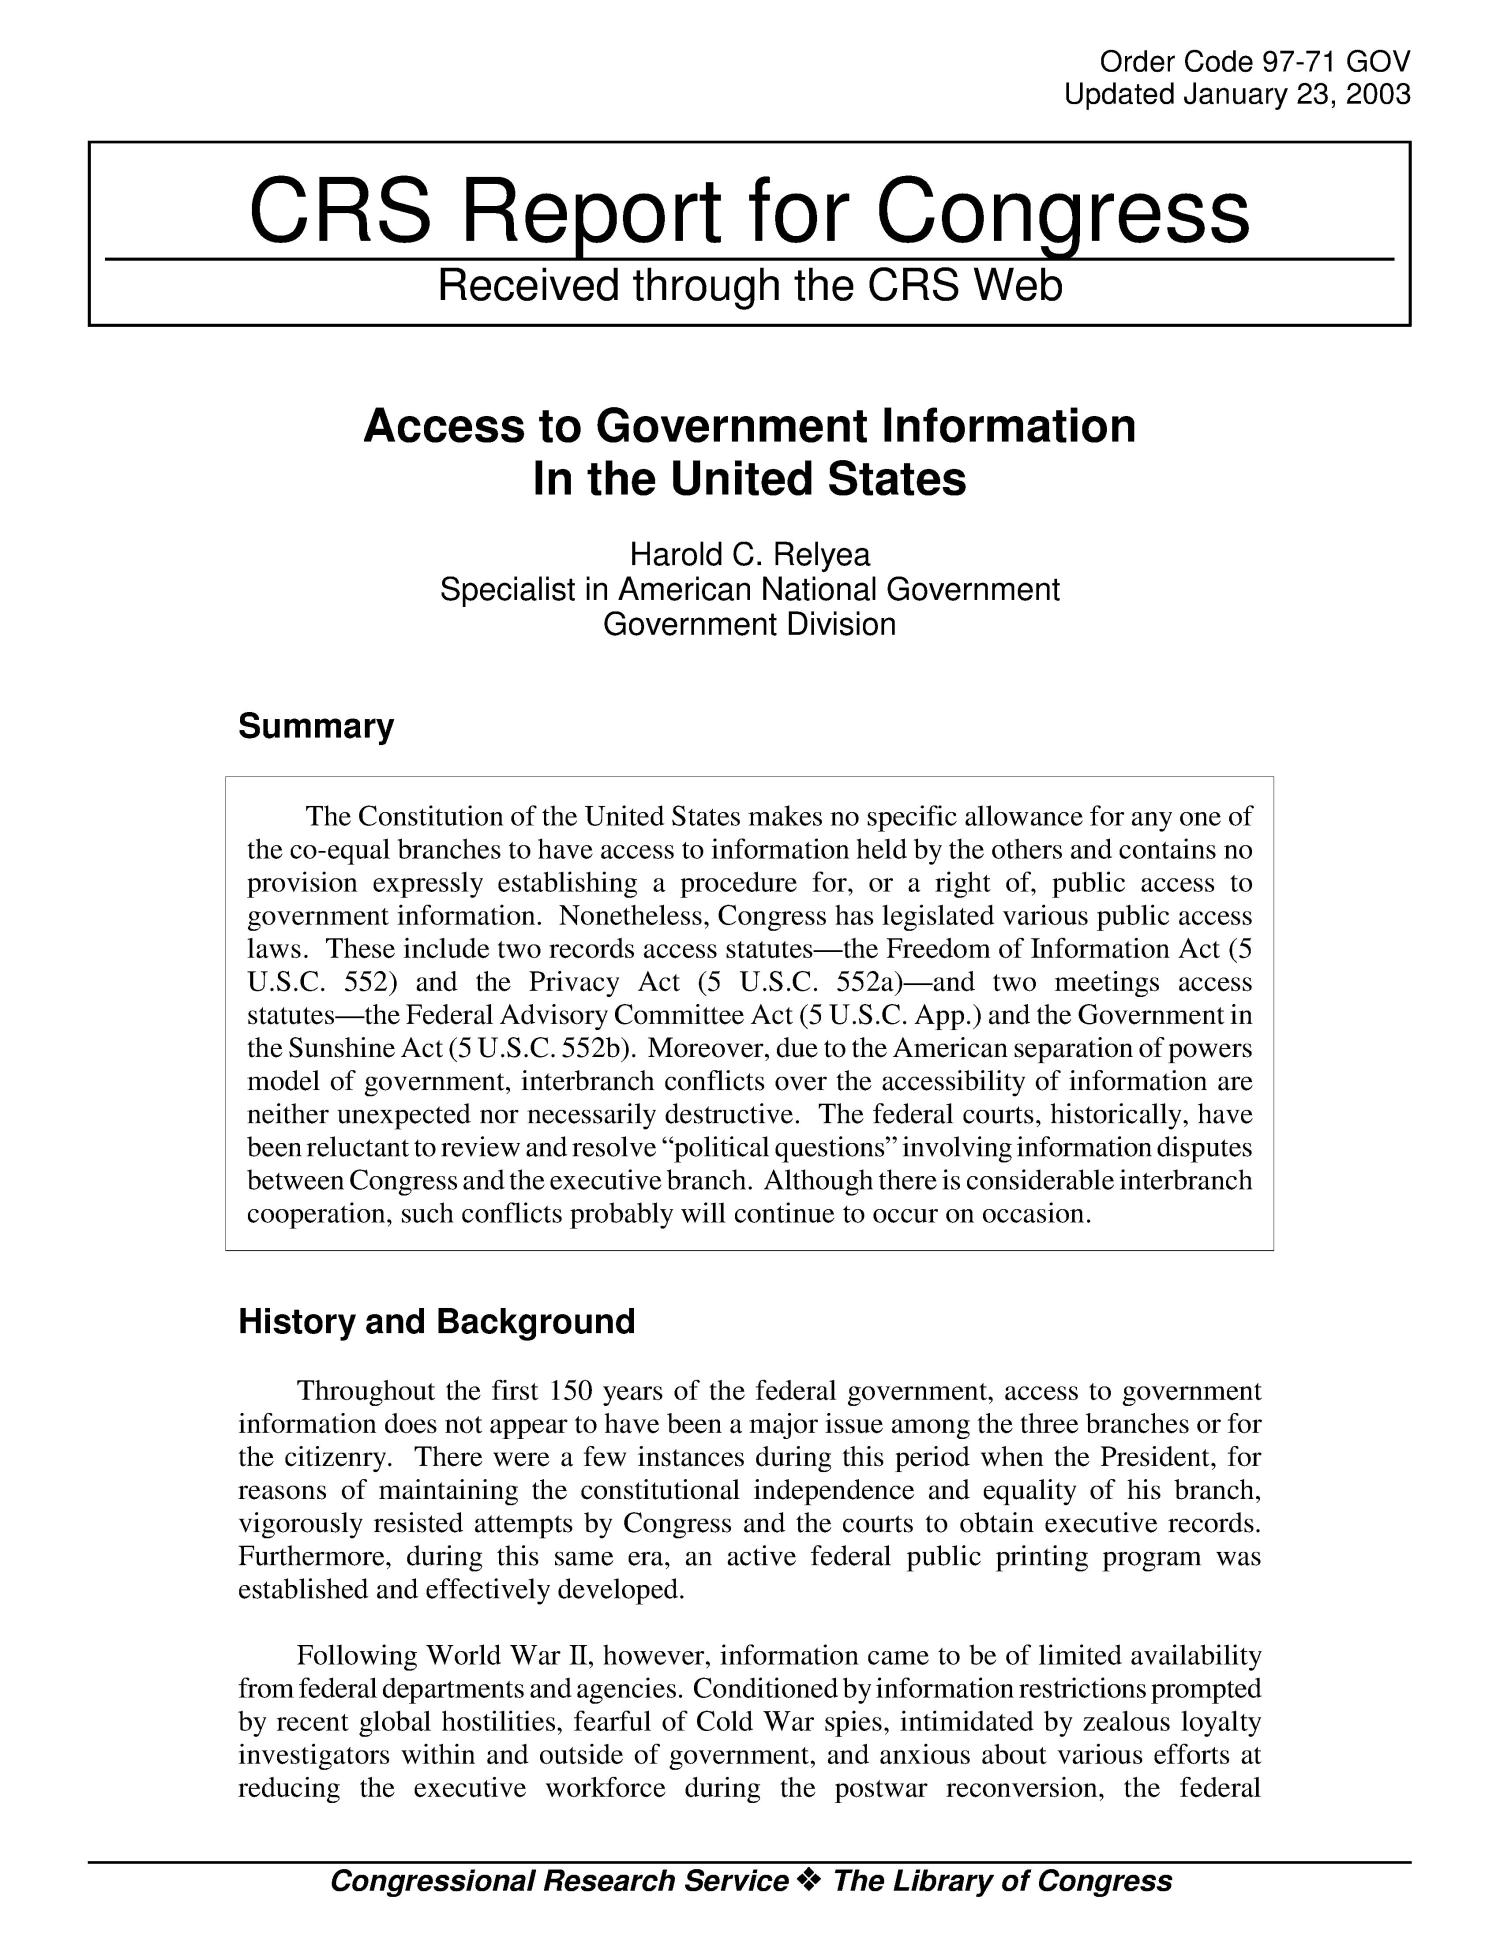 Access to Government Information In the United States                                                                                                      [Sequence #]: 1 of 4